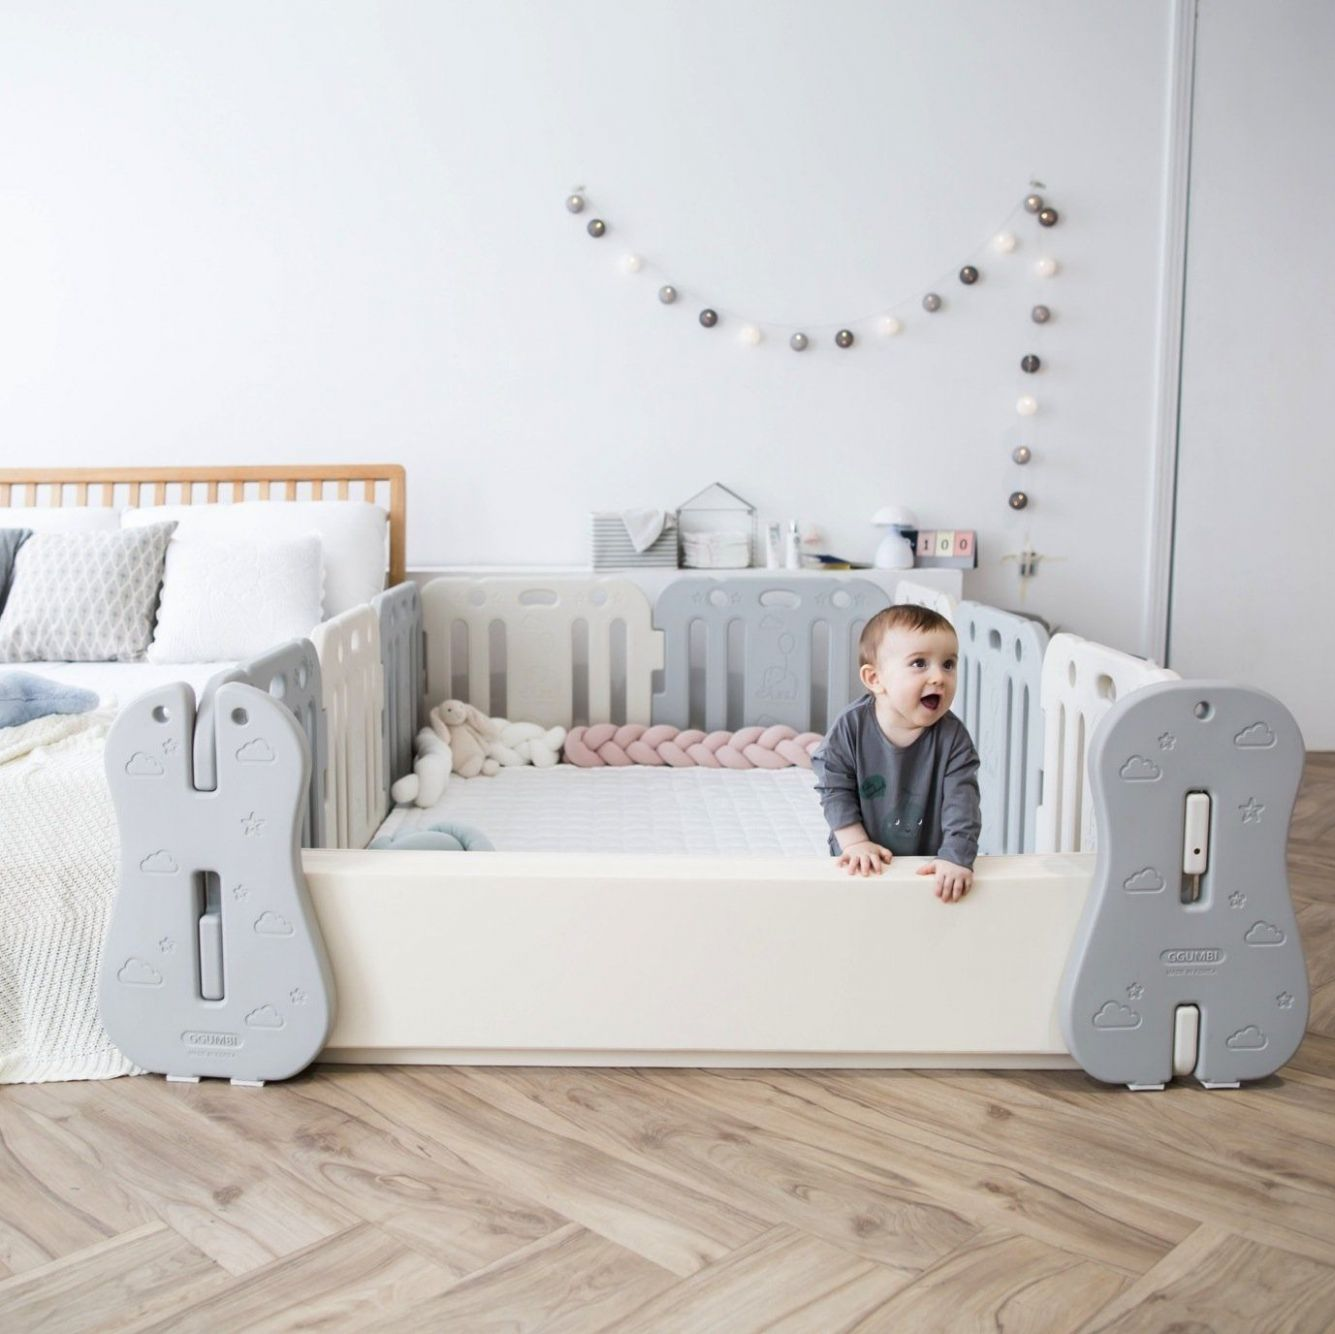 Baby Room Set - Family Guard (inclusive of premium Play mat!) - baby room mat